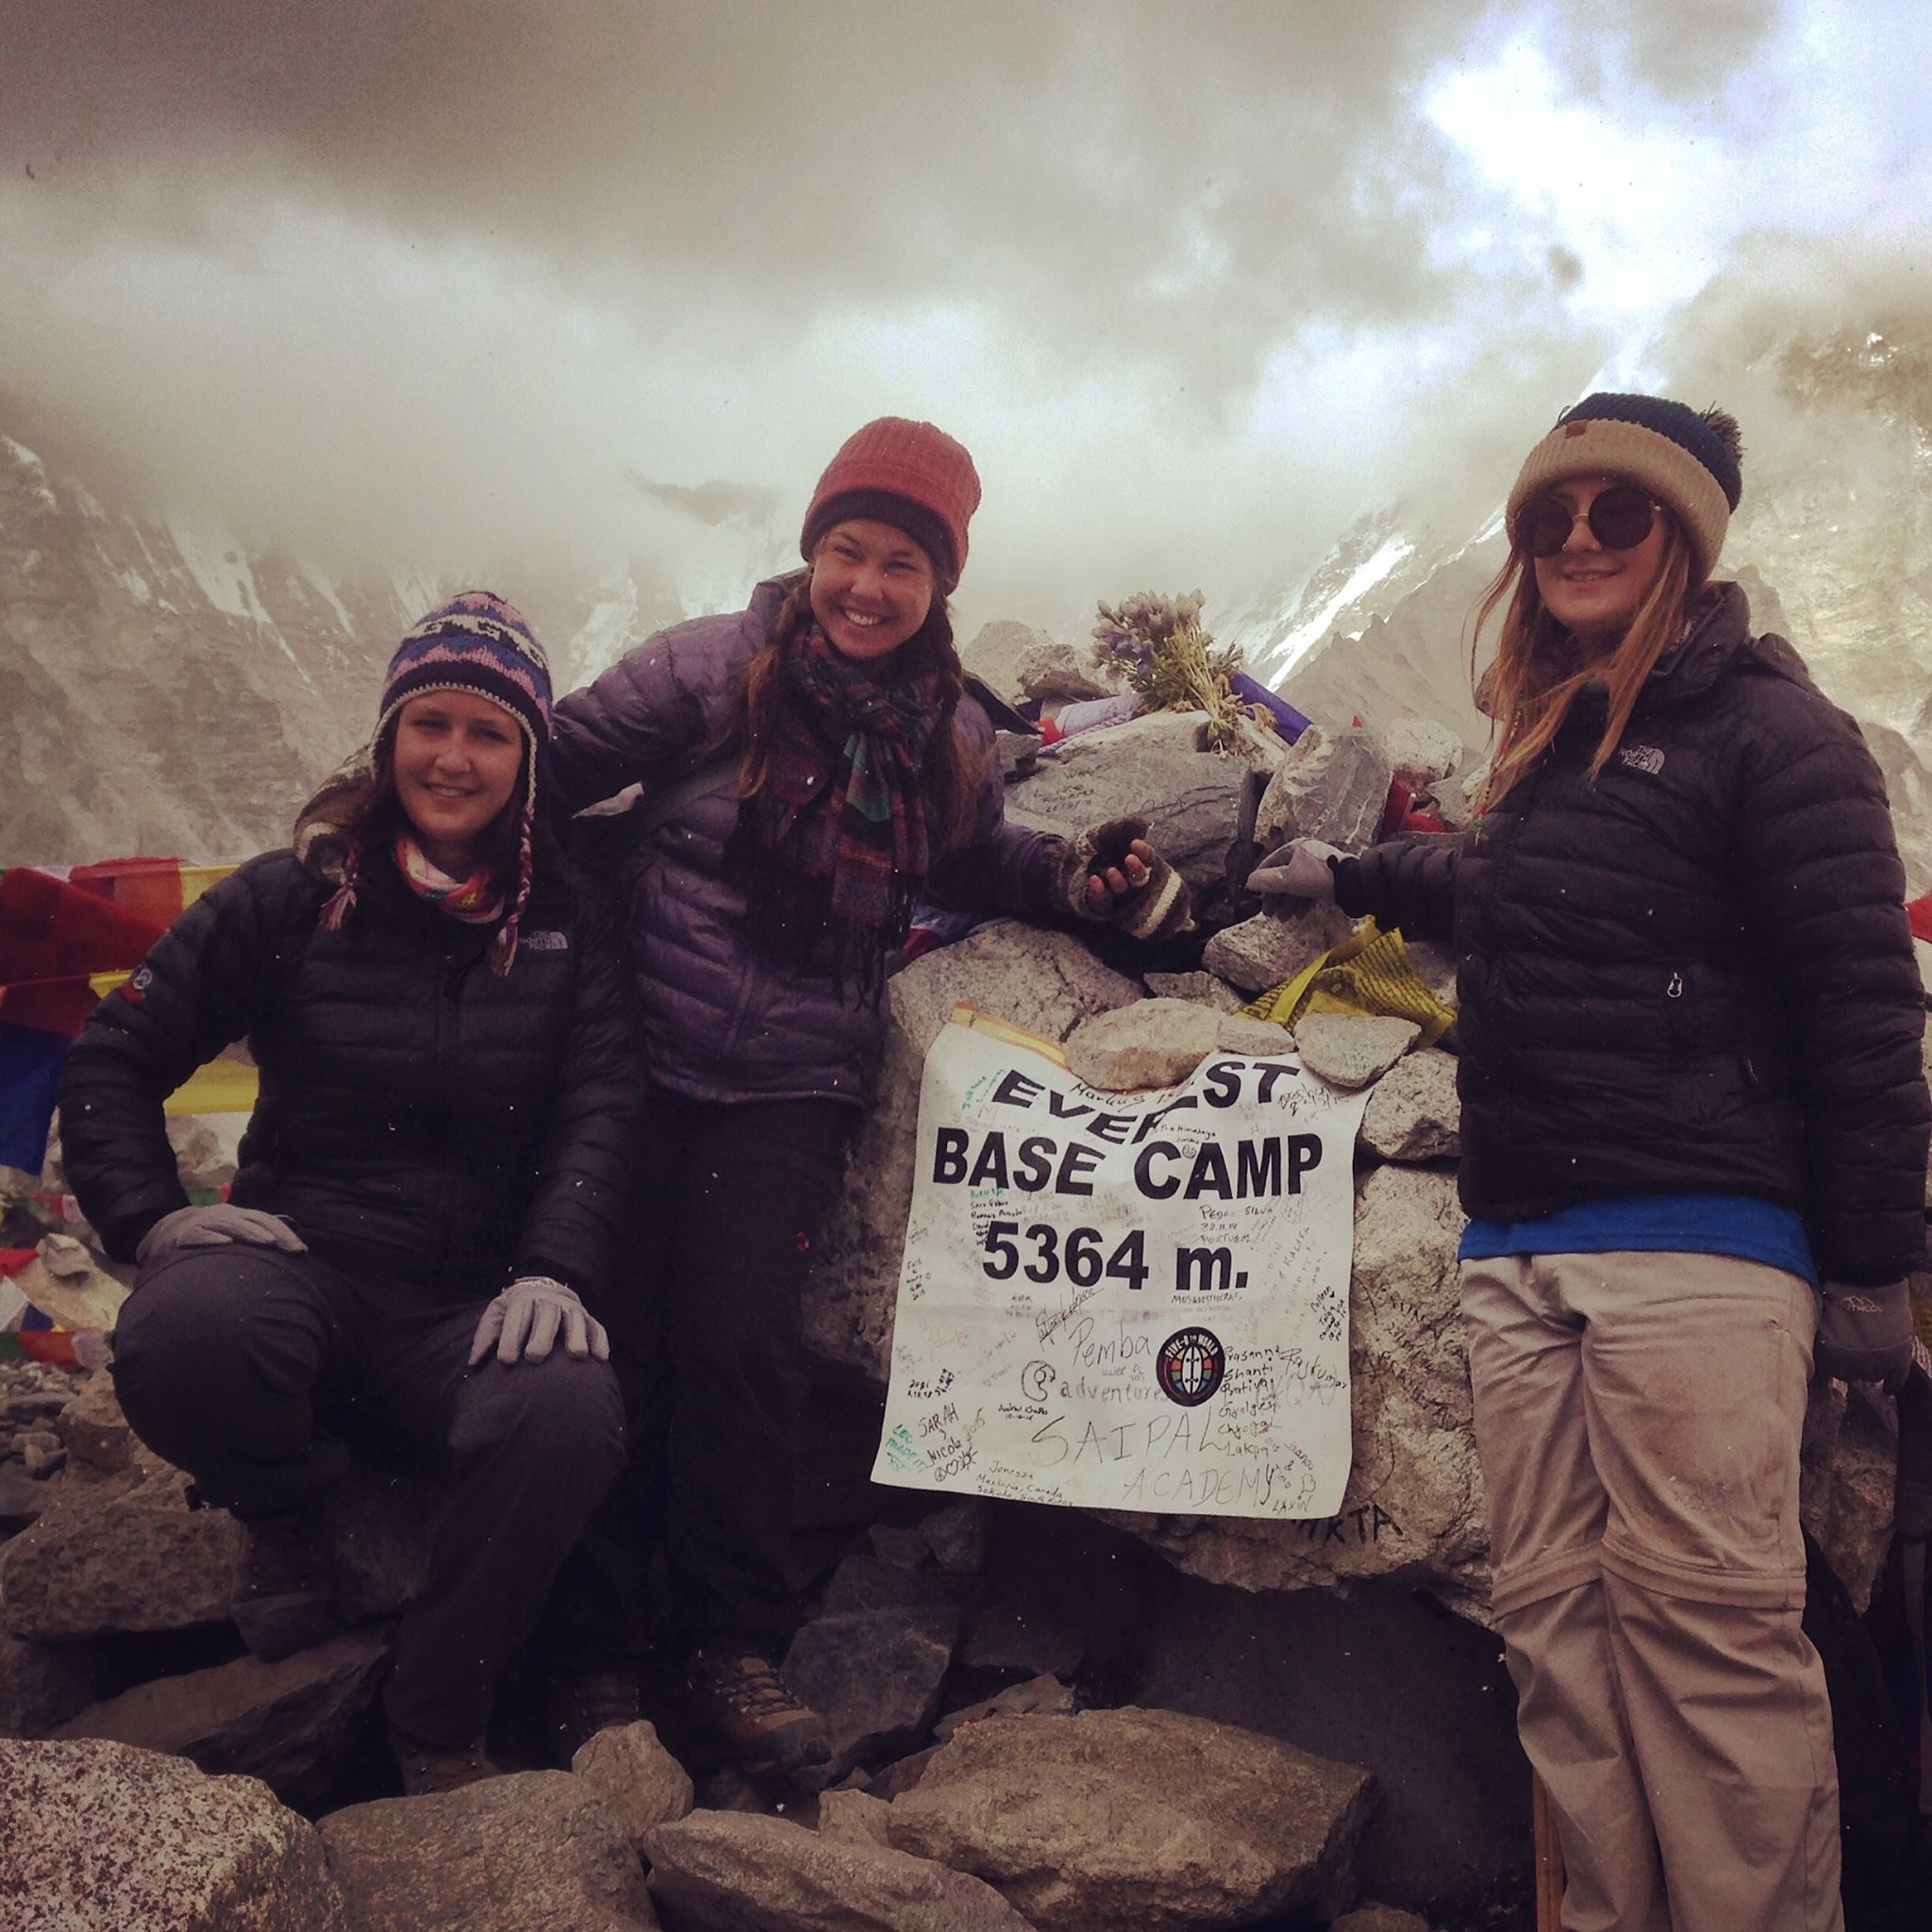 At the basecamp. Photo: Private